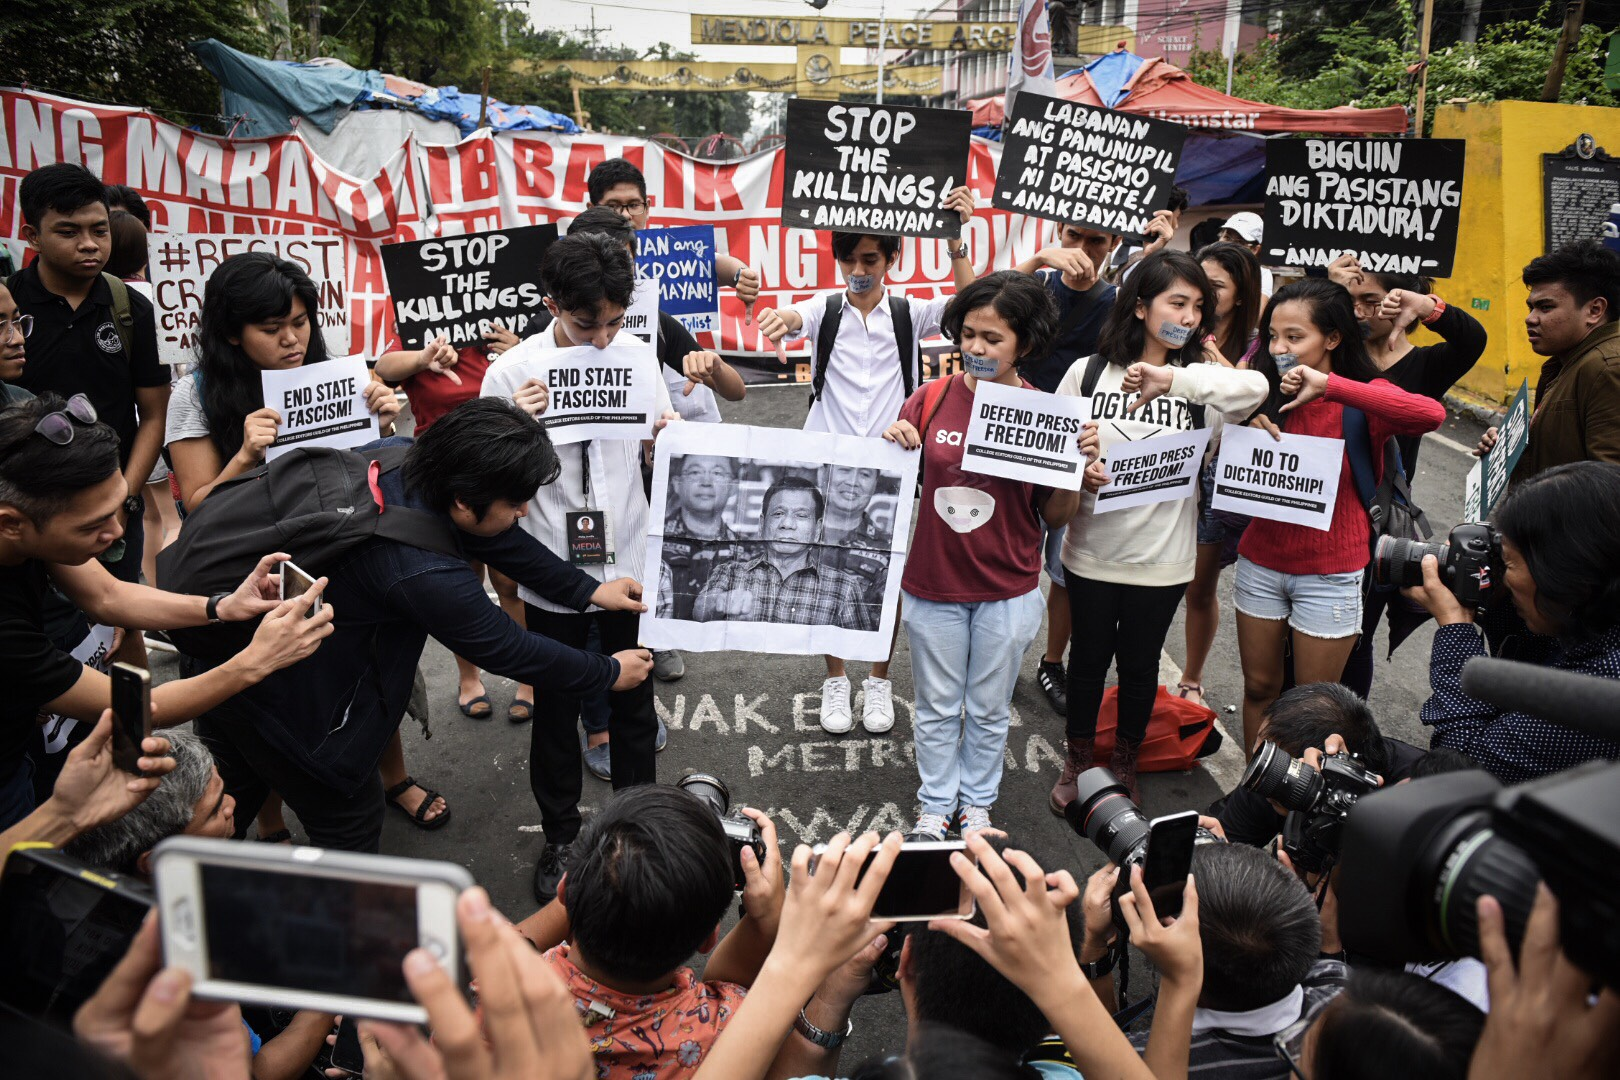 DEFEND PRESS FREEDOM. Campus journalists from CEGP protest to defend press freedom from the oppression of Duterte's government in front of the Mendiola Peace Arch on January 17, 2018. Photo by Alecs Ongcal